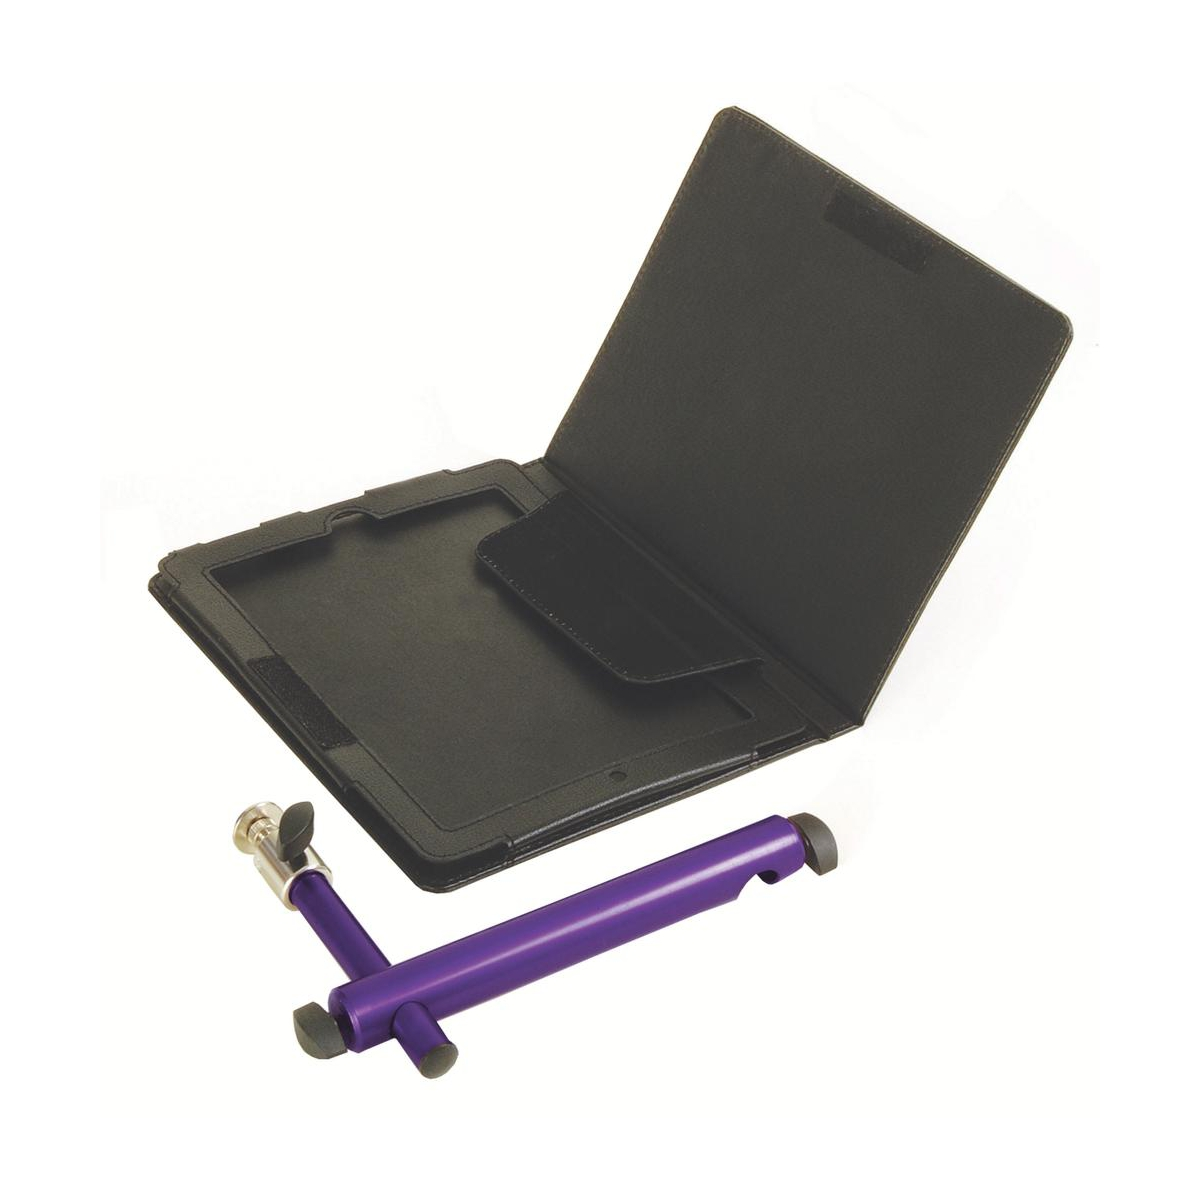 Tablet Mounts and Stands